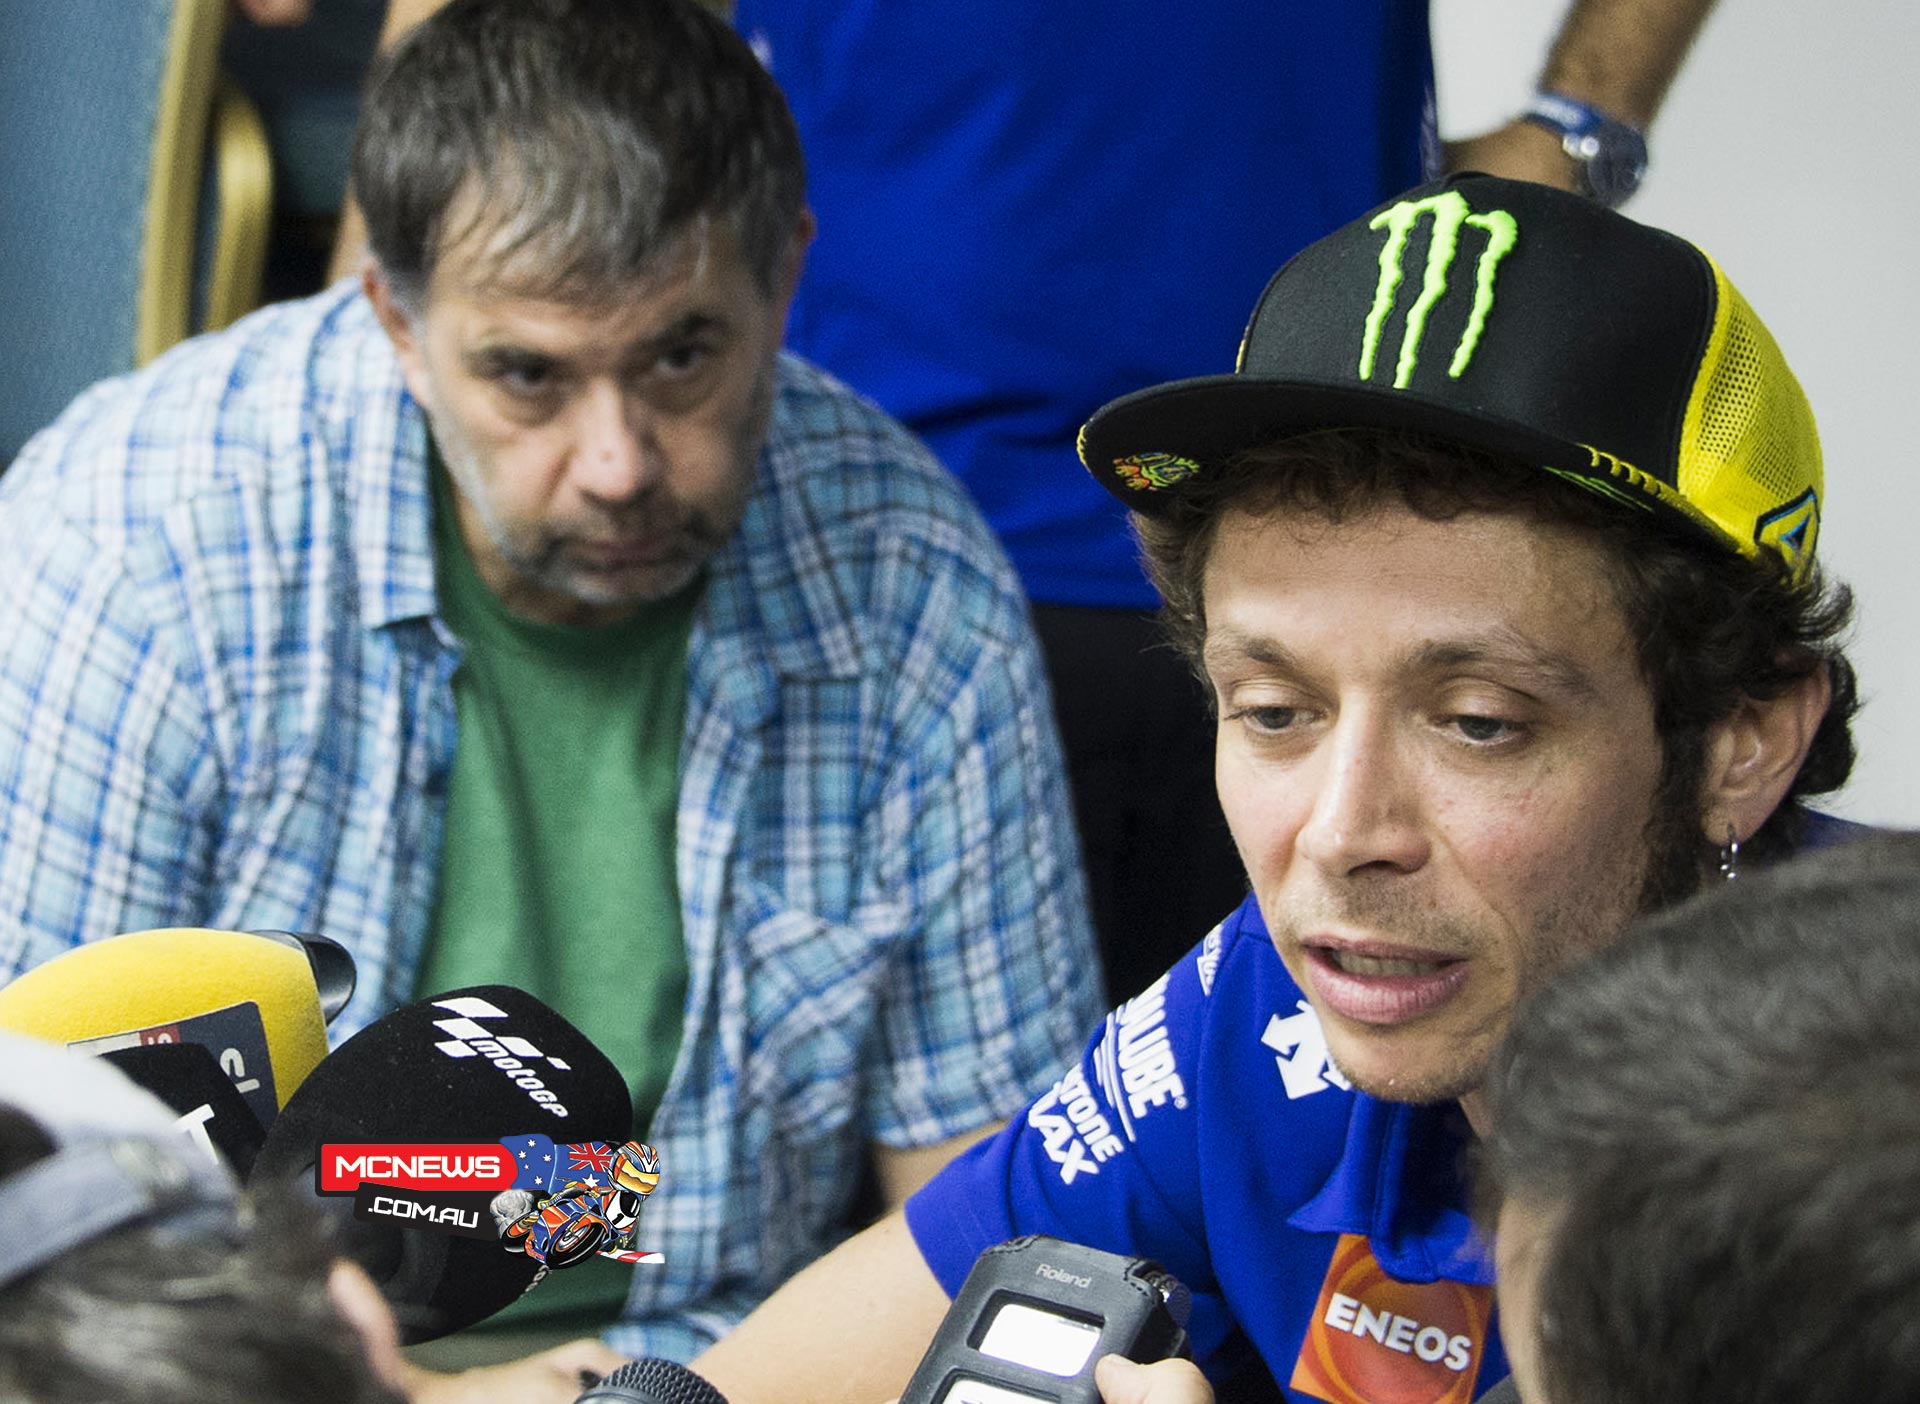 Valentino Rossi talks to the media about the Sepang MotoGP incident